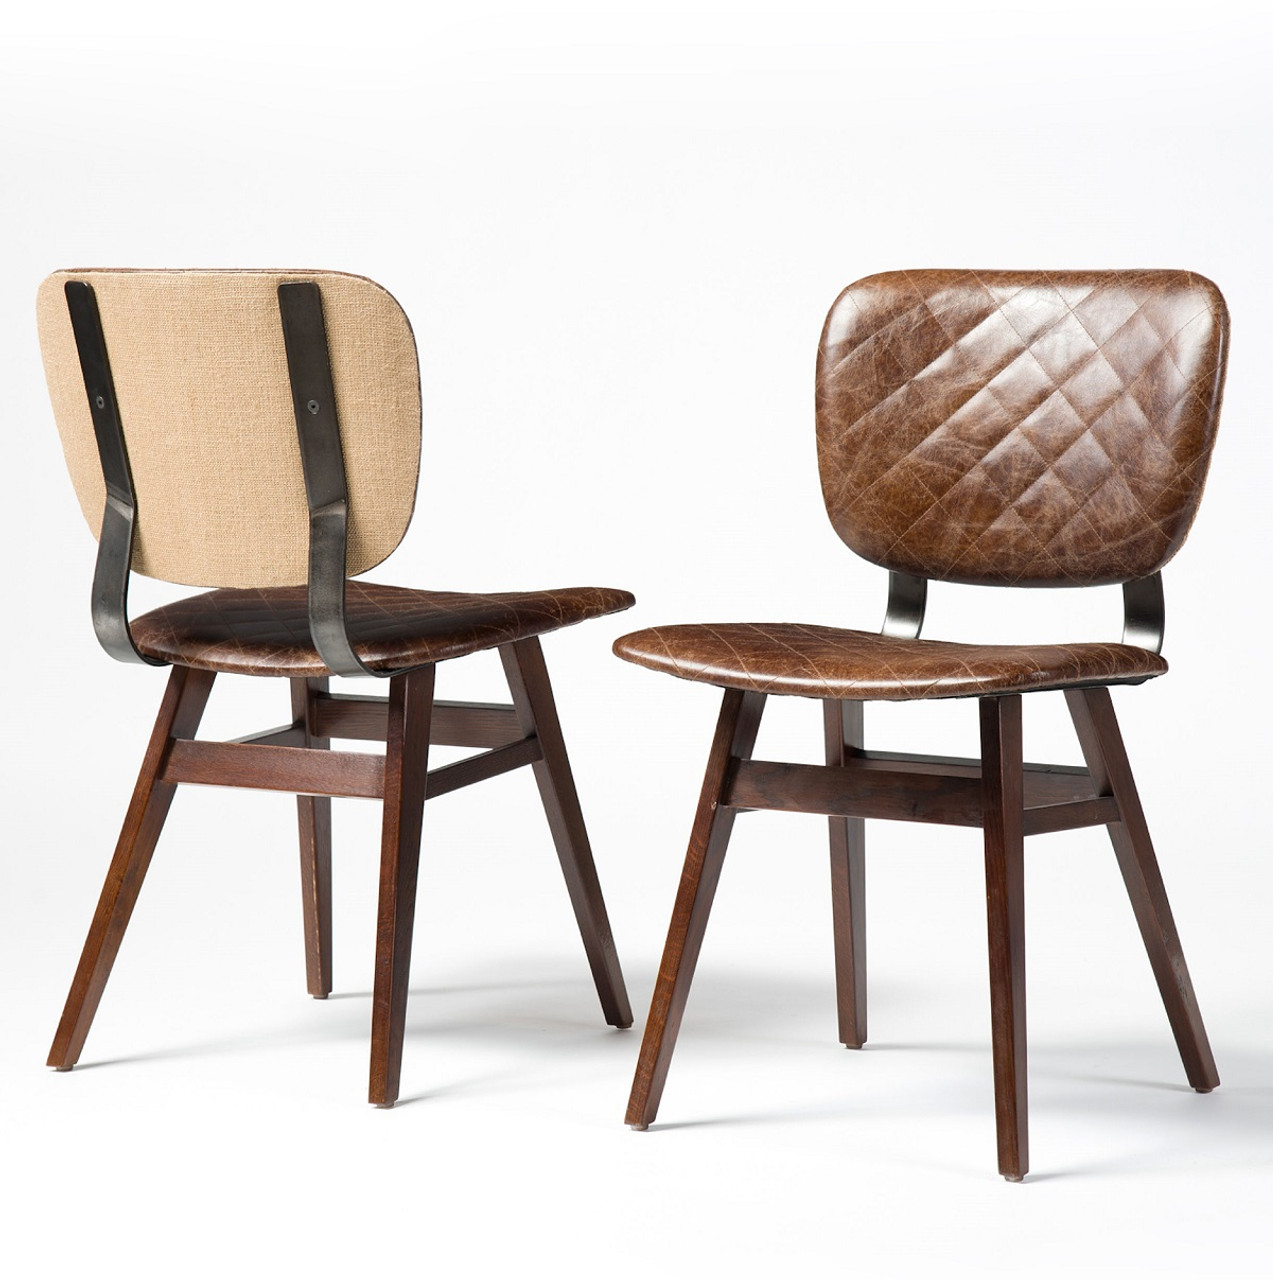 seat dining chair royal chairs oak leather fishpools bicast